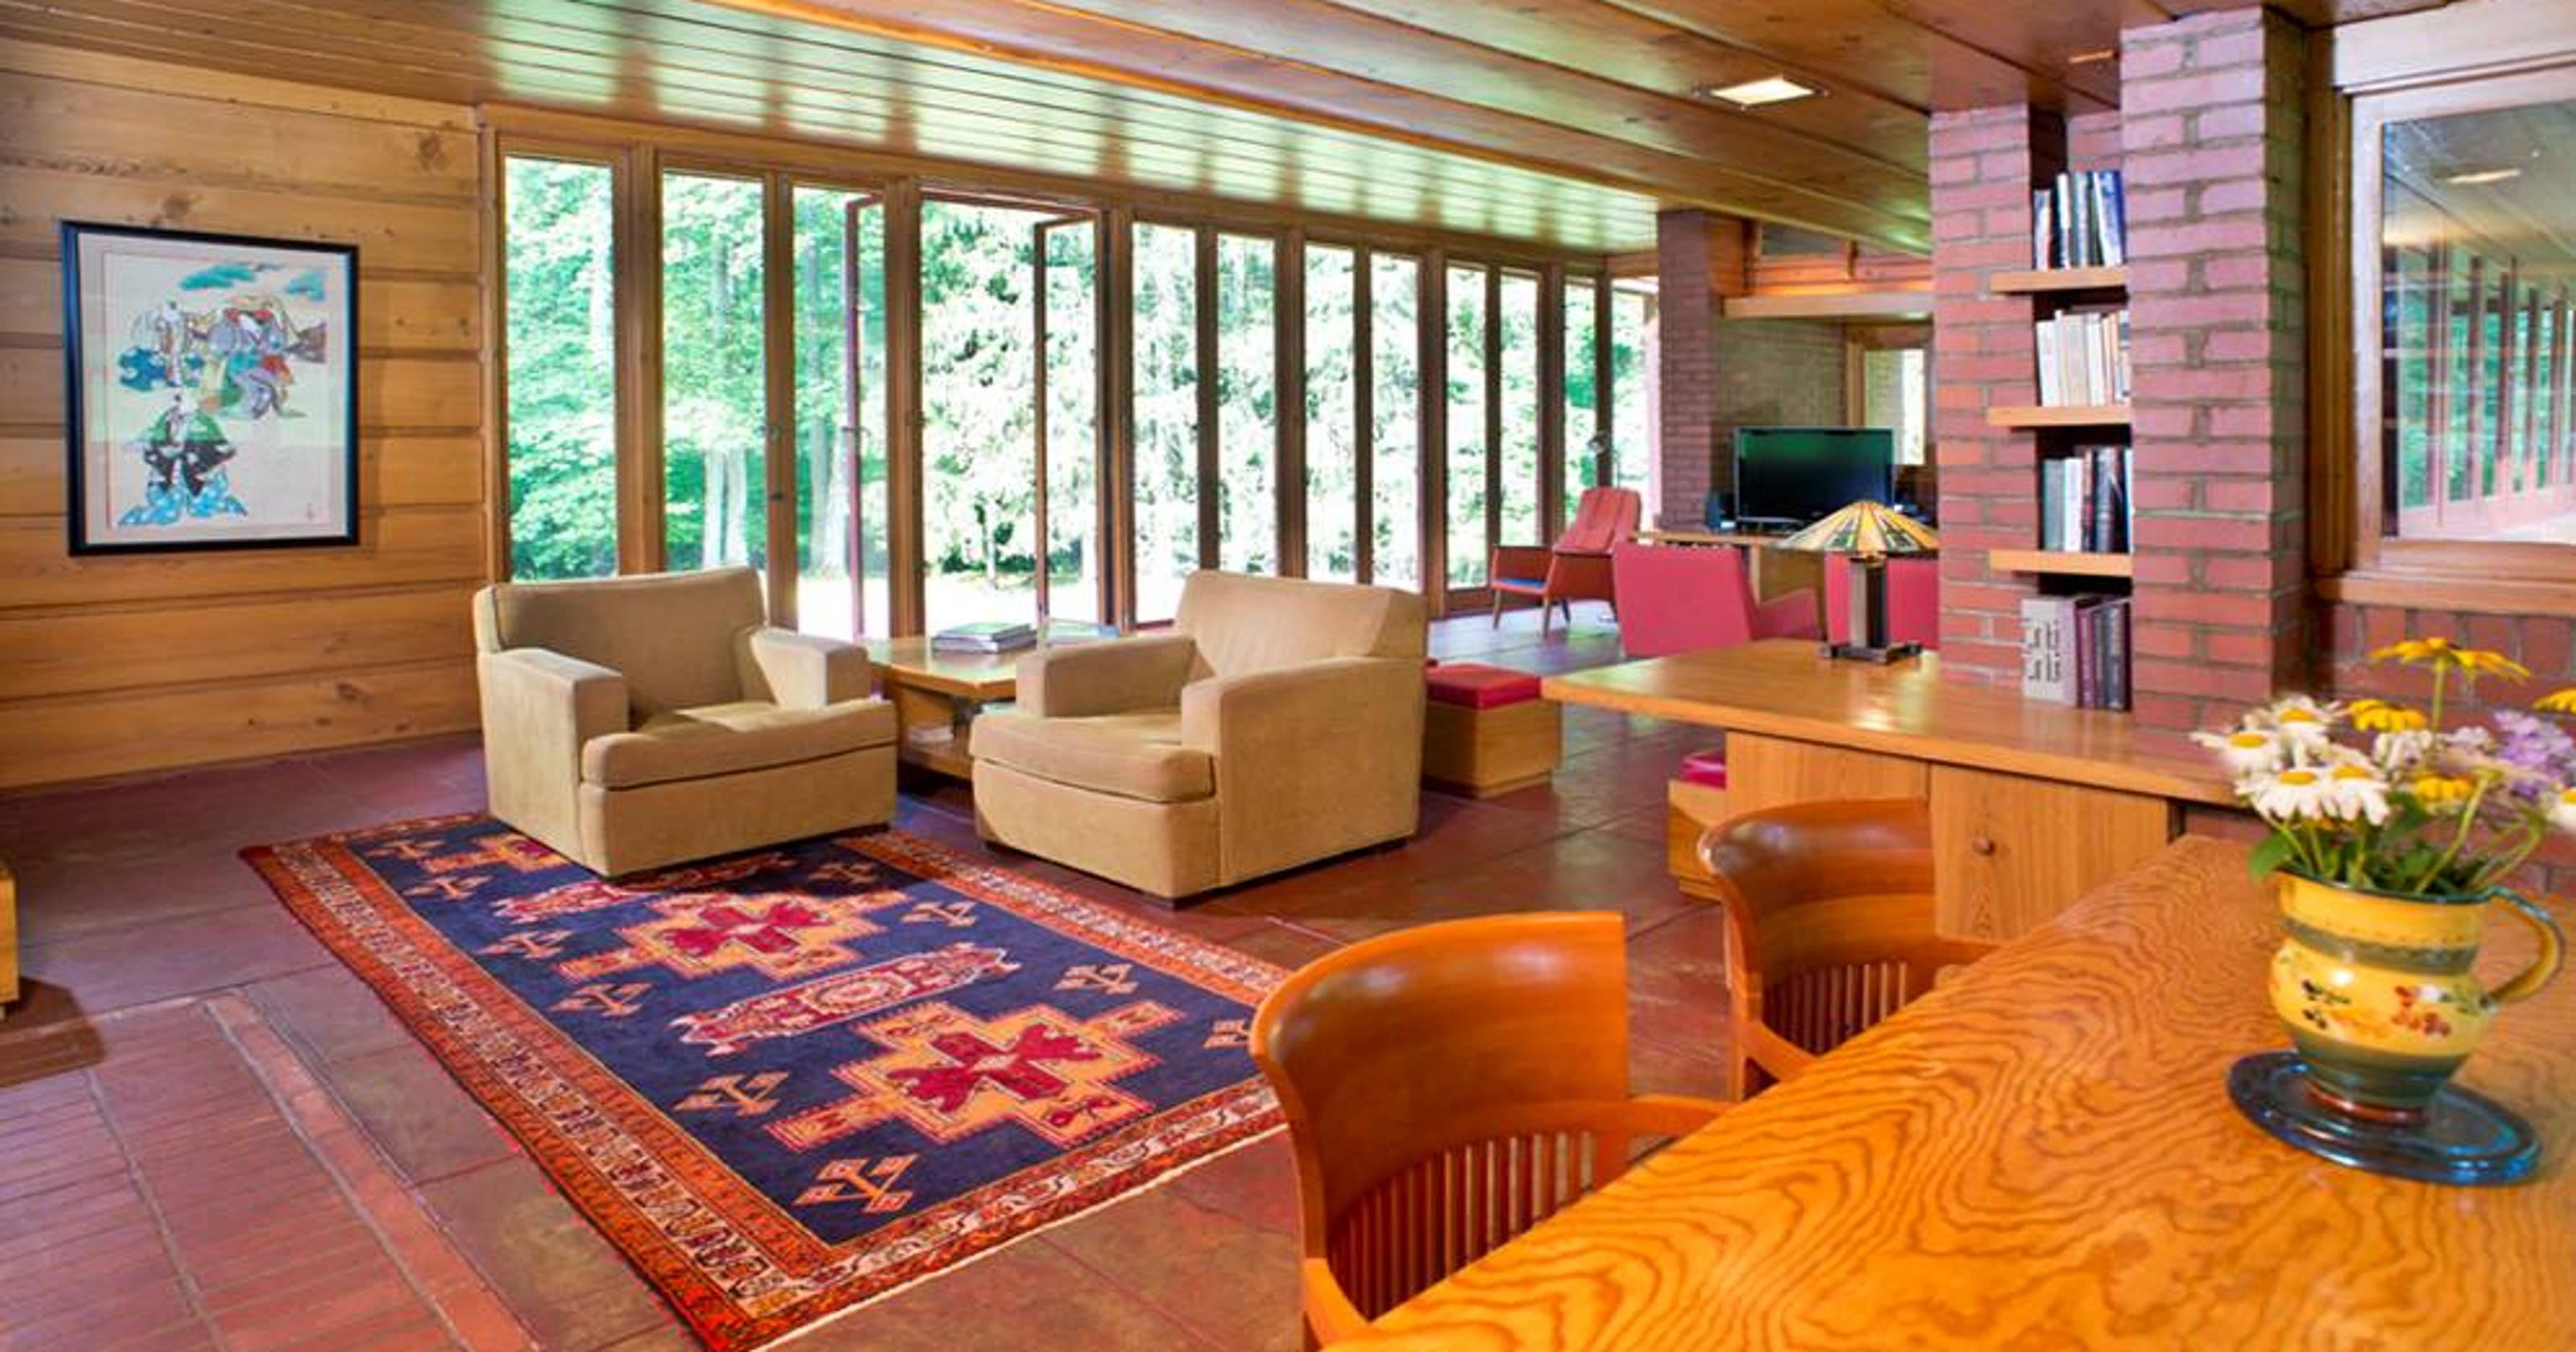 Frank lloyd wright 39 s christie house for sale in new jersey - Frank lloyd wright homes for sale ...